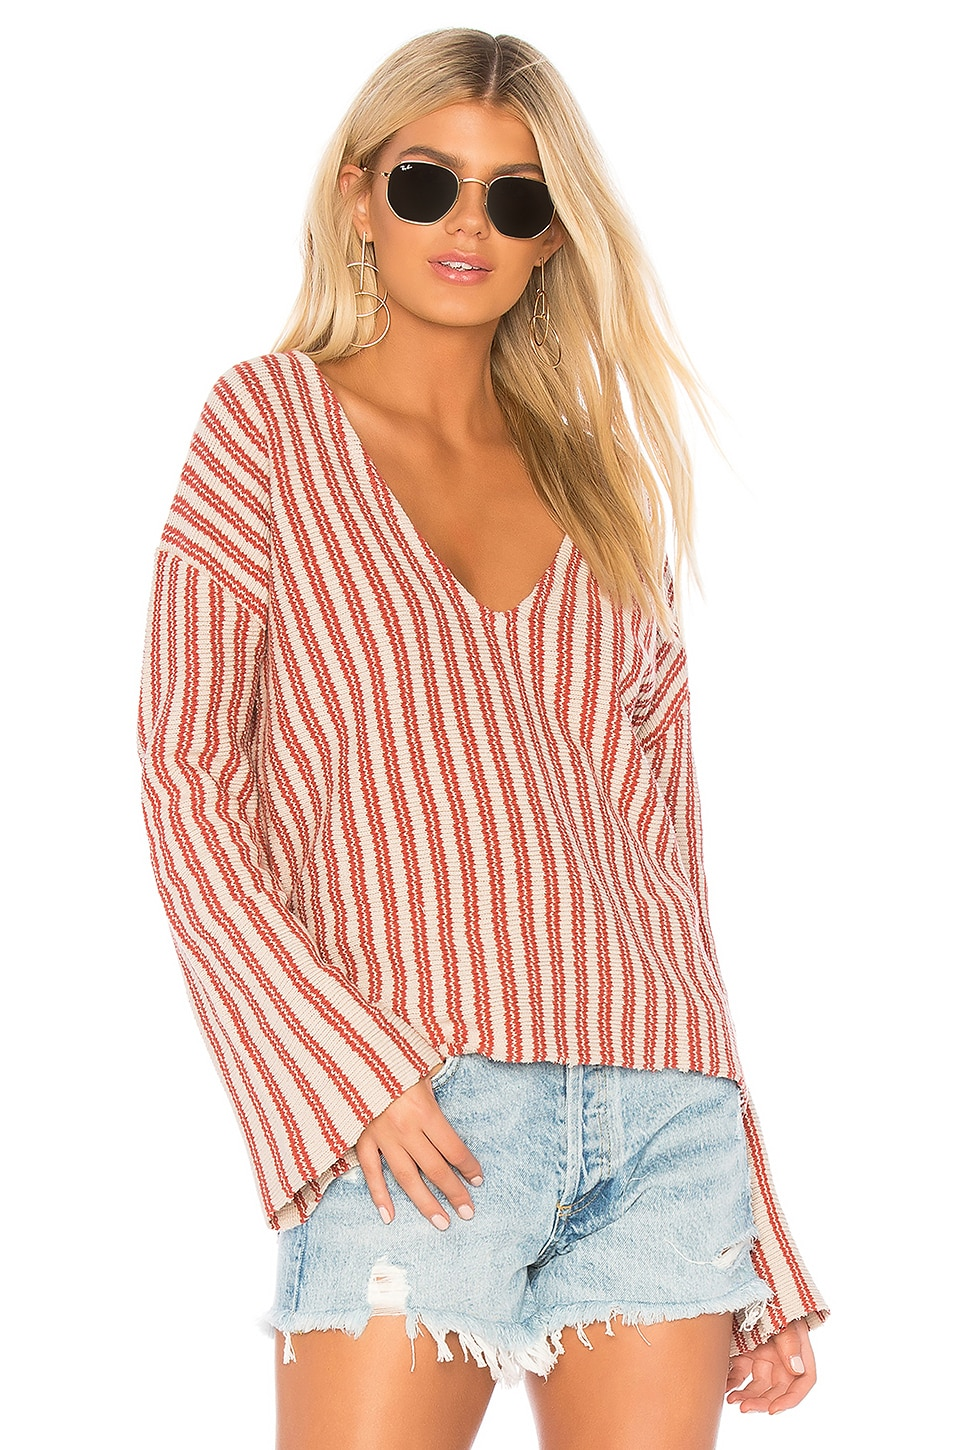 AFTER SUNDOWN SWEATER from REVOLVE